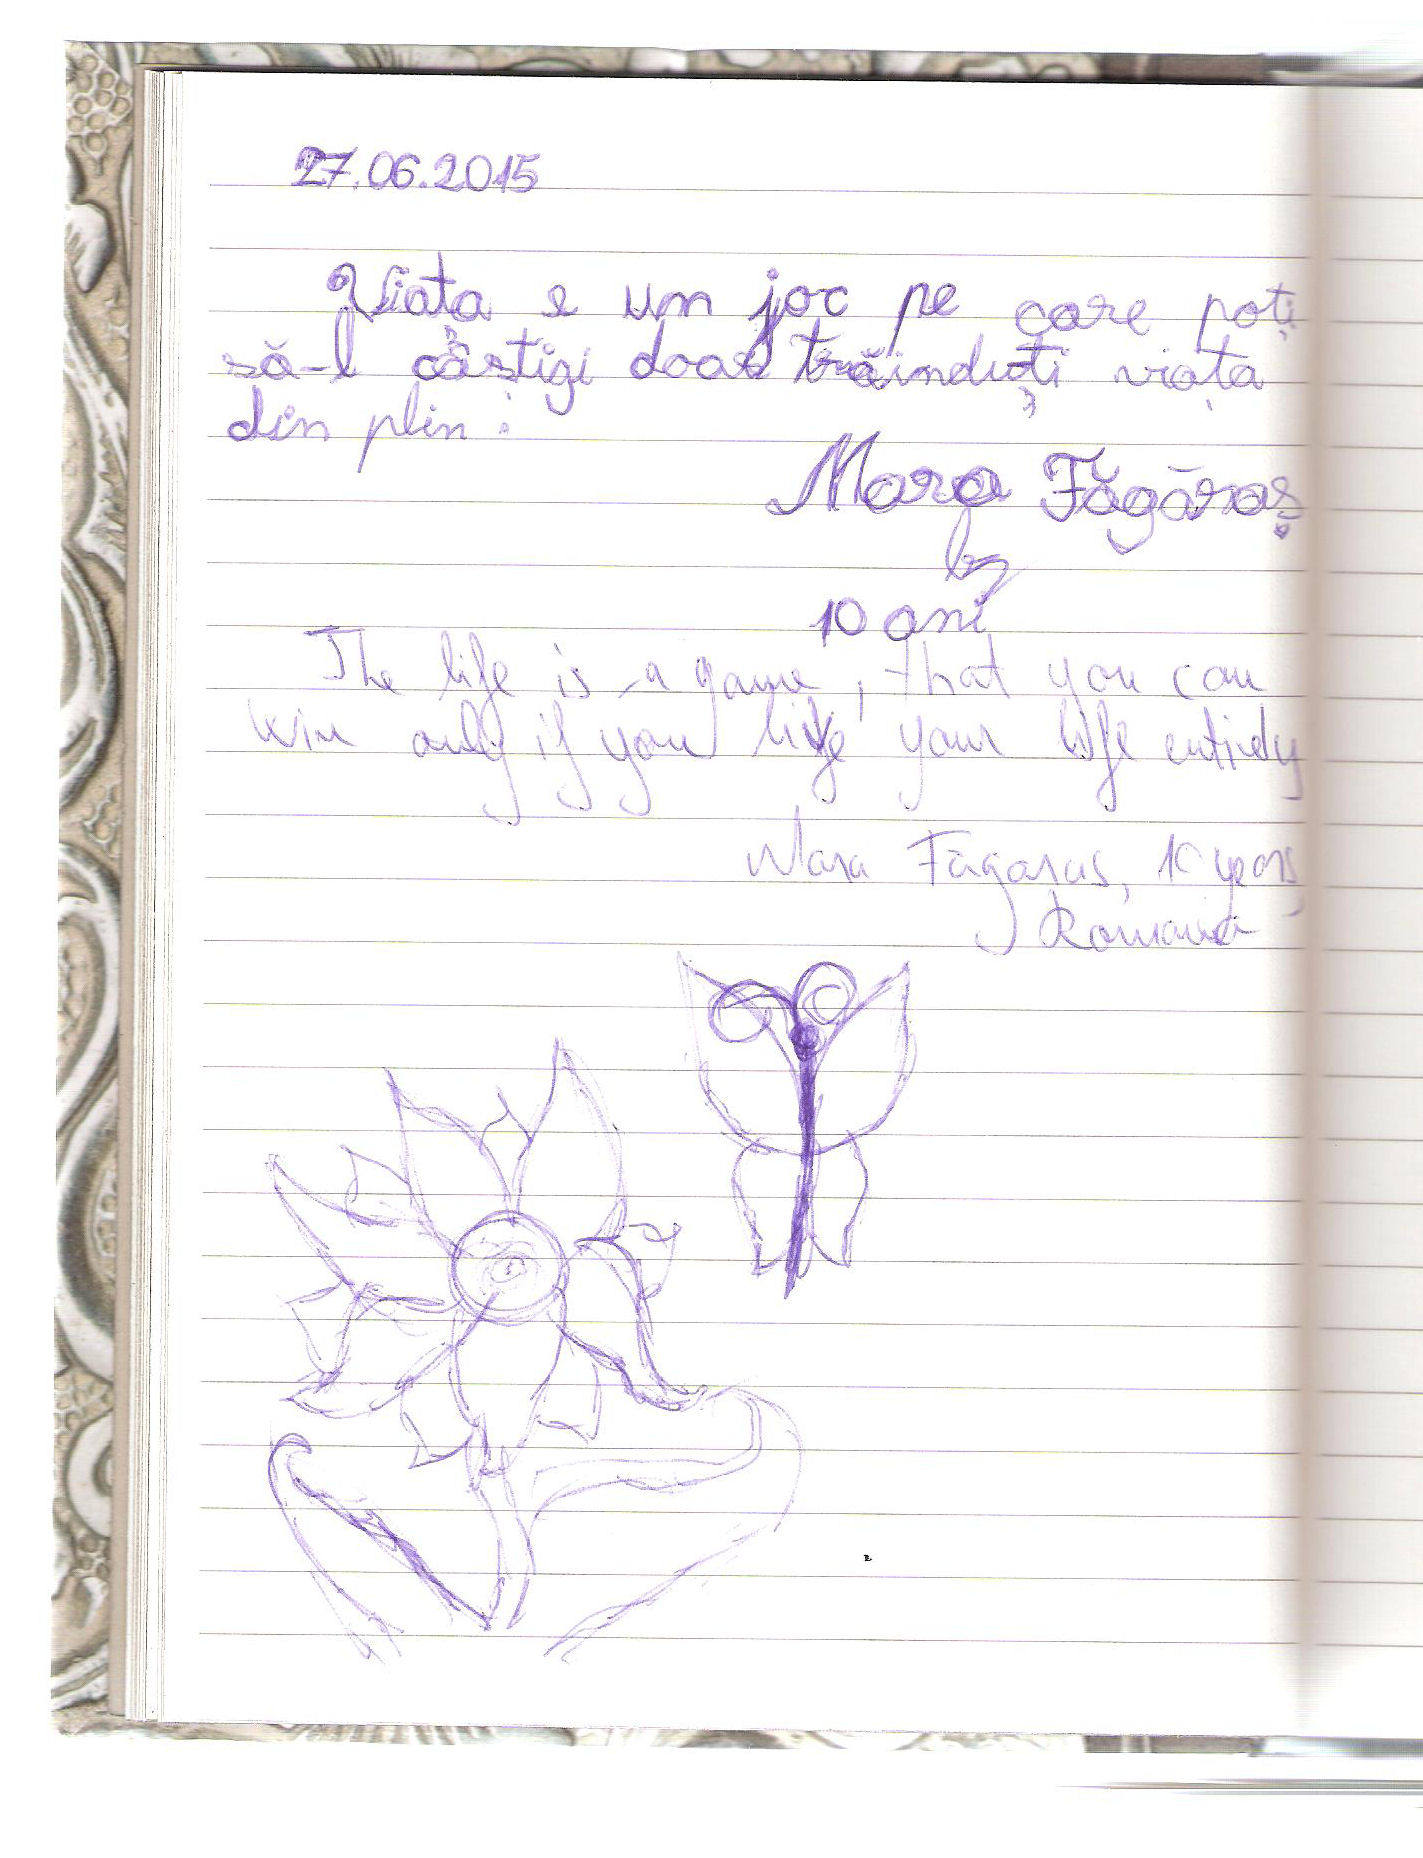 guestbook-page-020